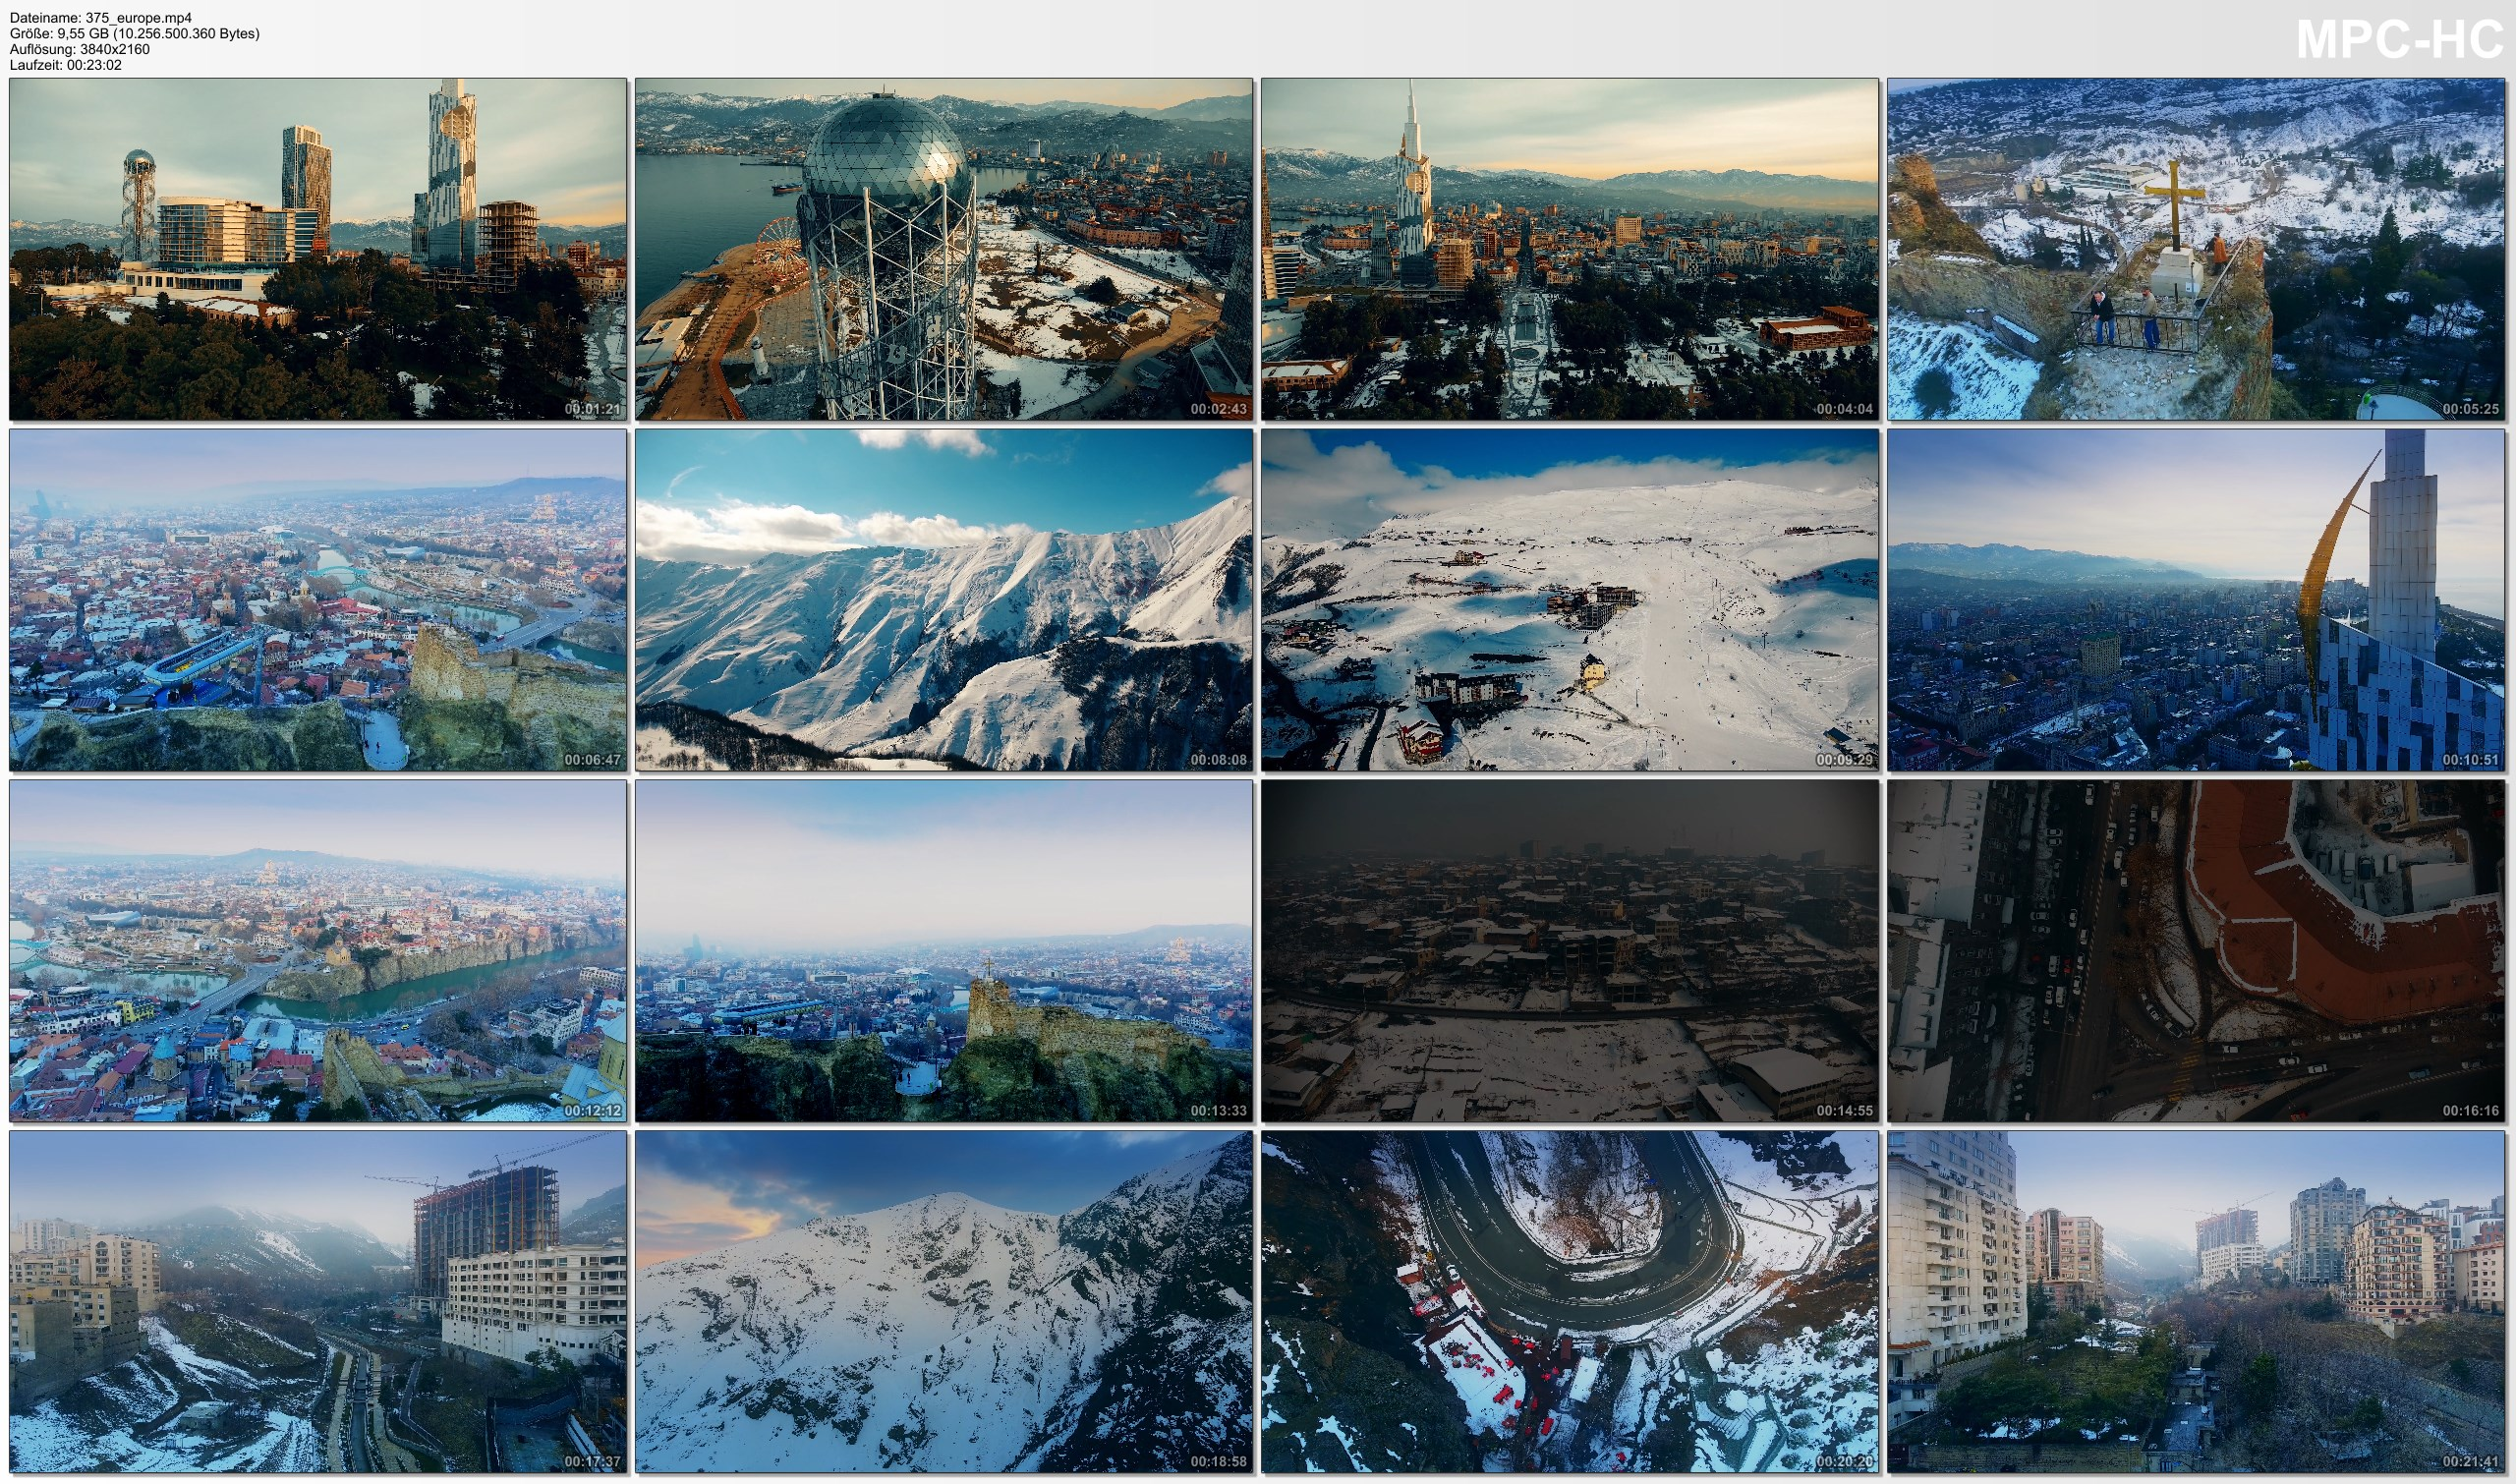 Drone Pictures from Video 【4K】Drone Footage | The Beauty of The Caucasus *EXTENDED* 24 Minutes 2019 | Cinematic Aerial Film